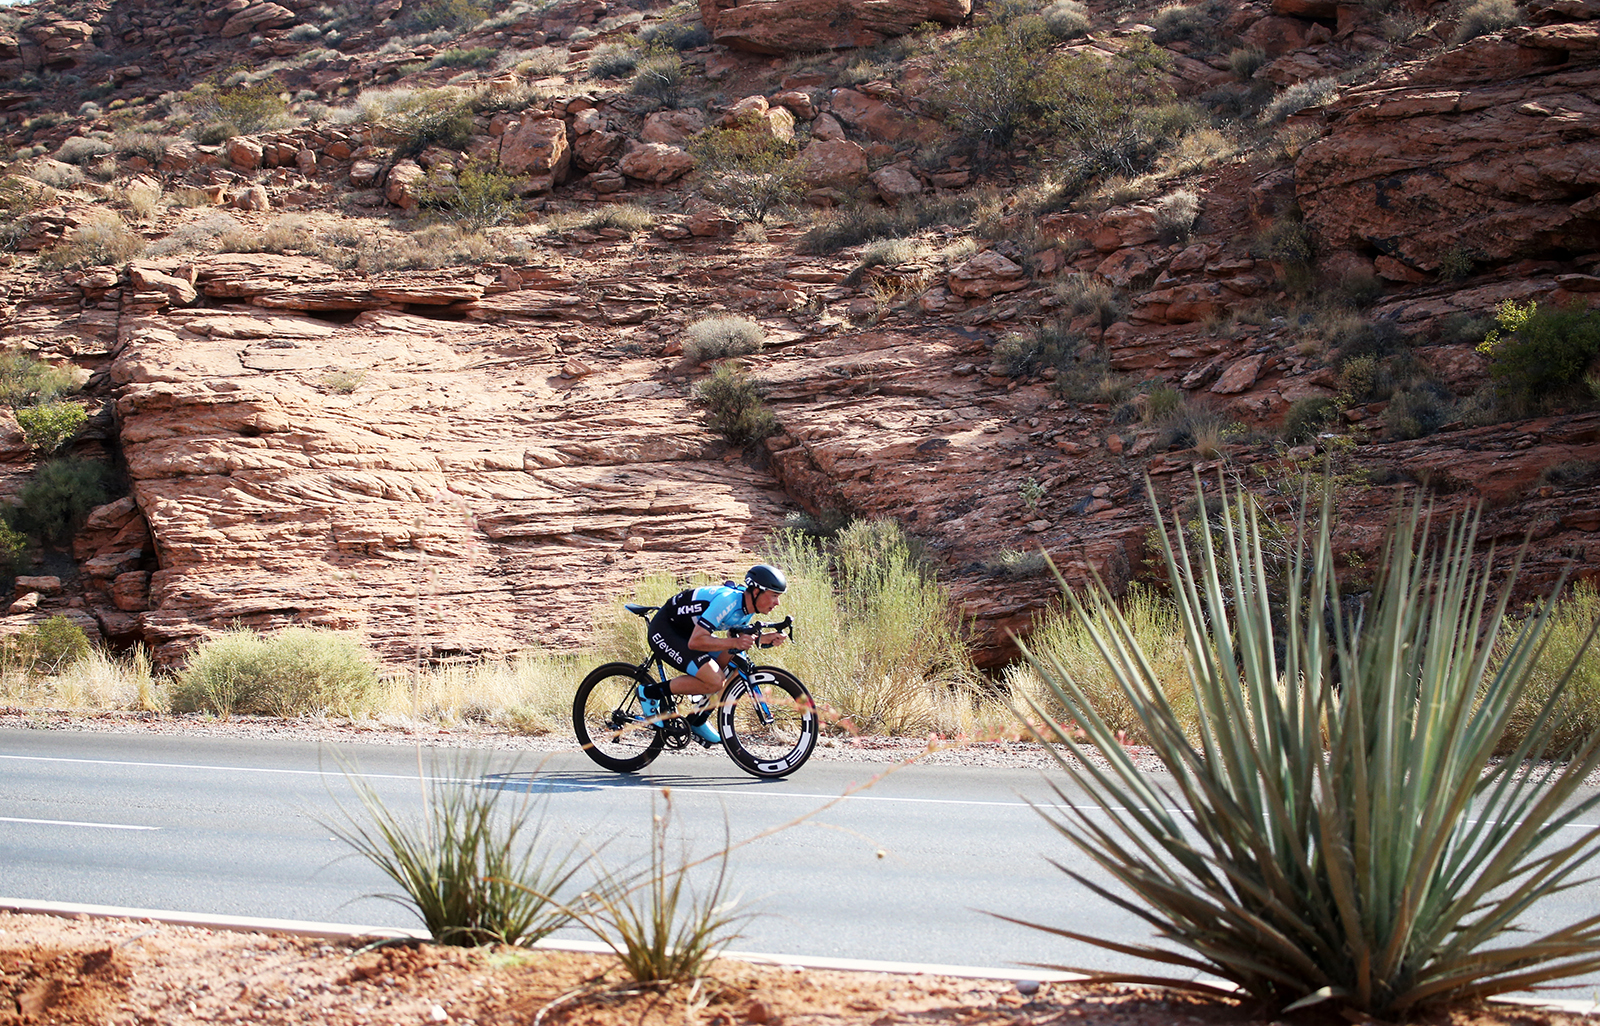 Many riders opted for the super tuck on the descents. 2018 Tour of Utah Team Prologue, August 6, 2018, St. George, Utah. Photo by Cathy Fegan-Kim, cottonsoxphotography.net